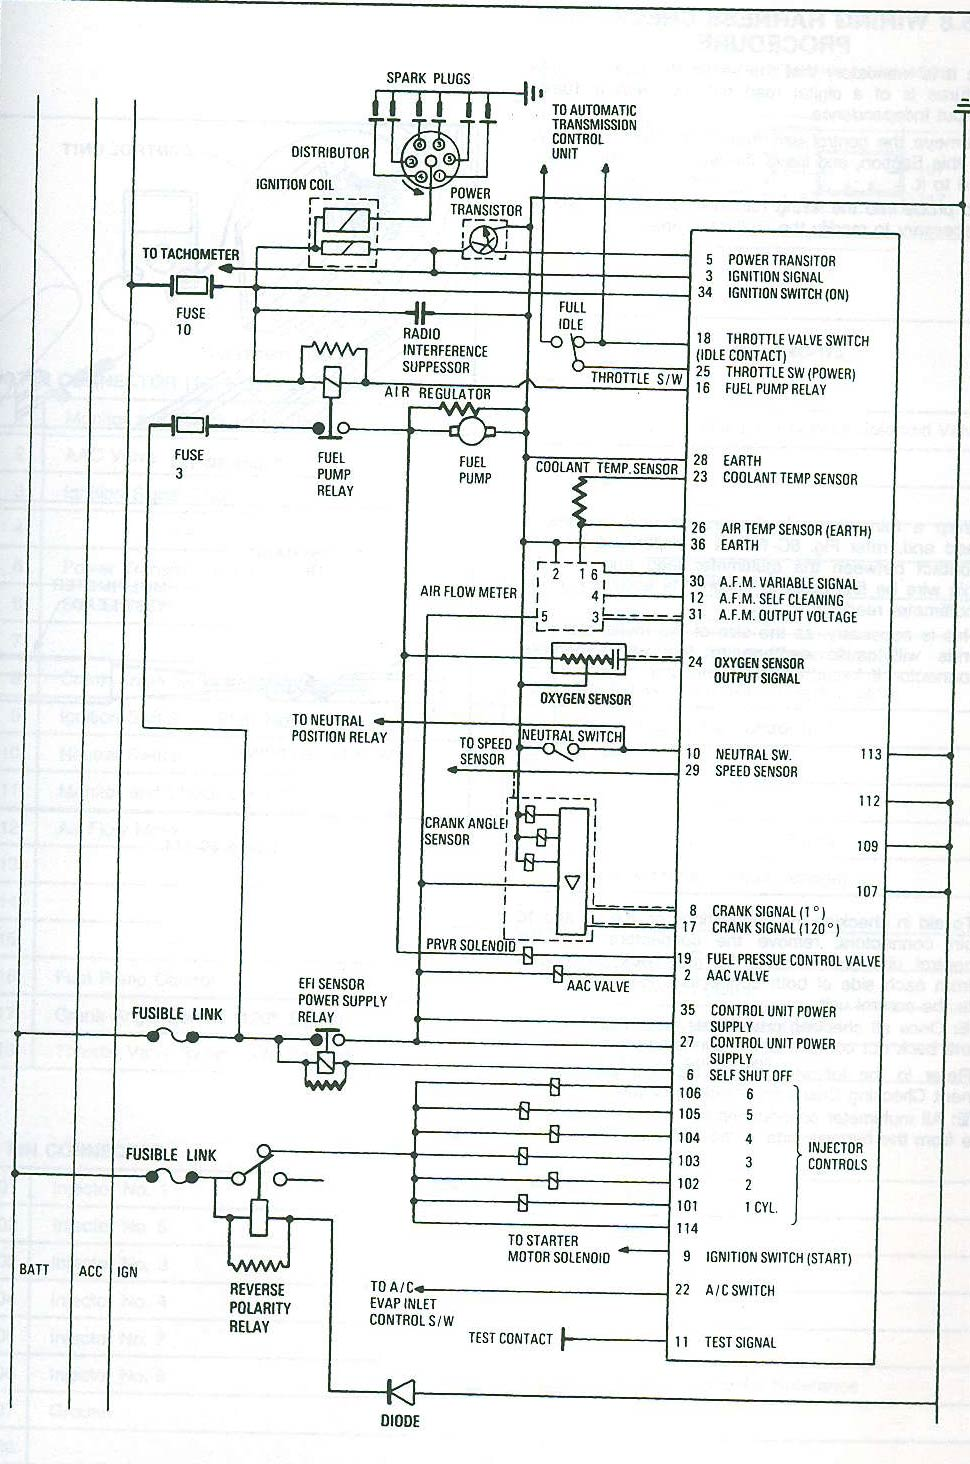 RB30 wiring diagrams | 280zx project